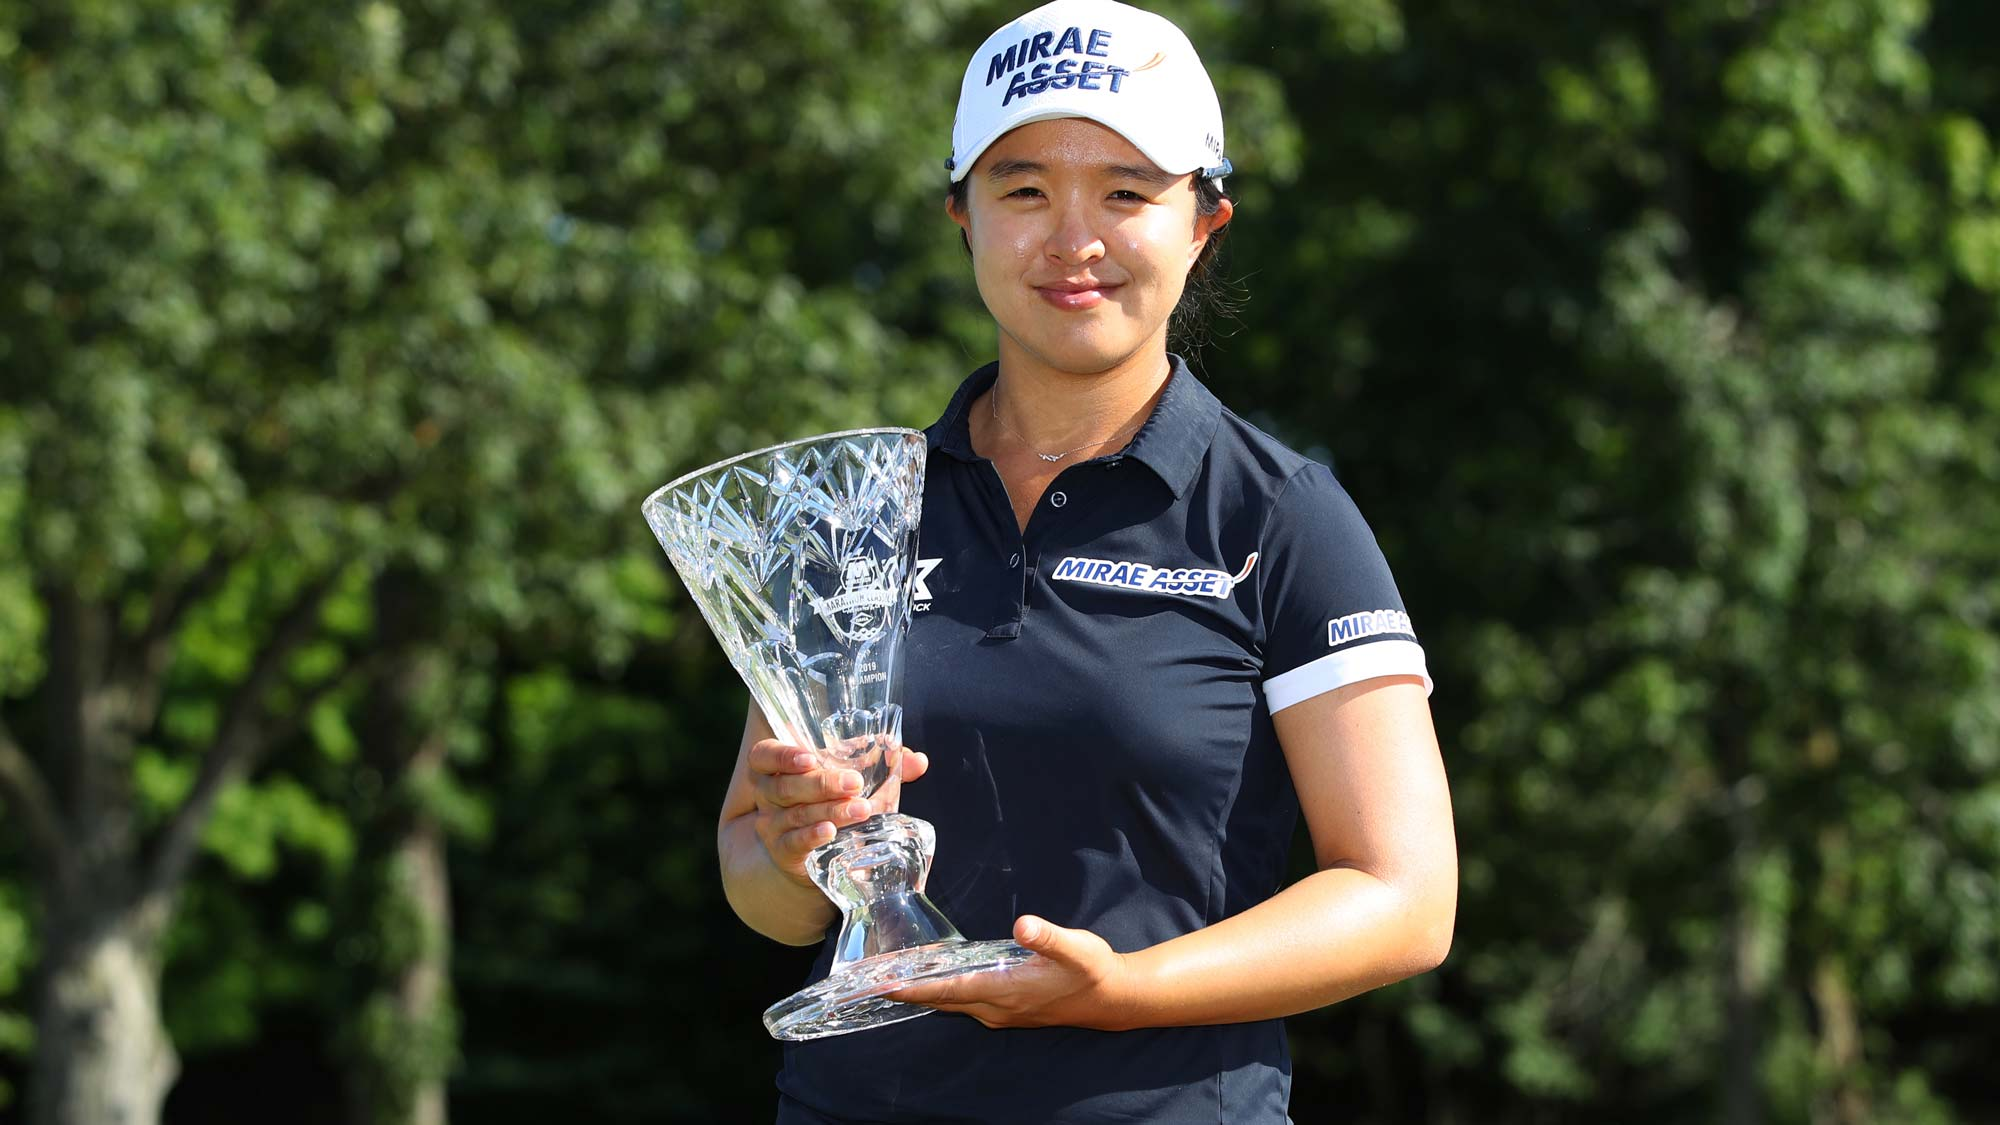 Sei Young Kim has her #BagsPacked for the 2020 Diamond Resorts Tournament of Champions after her win at the Marathon Classic